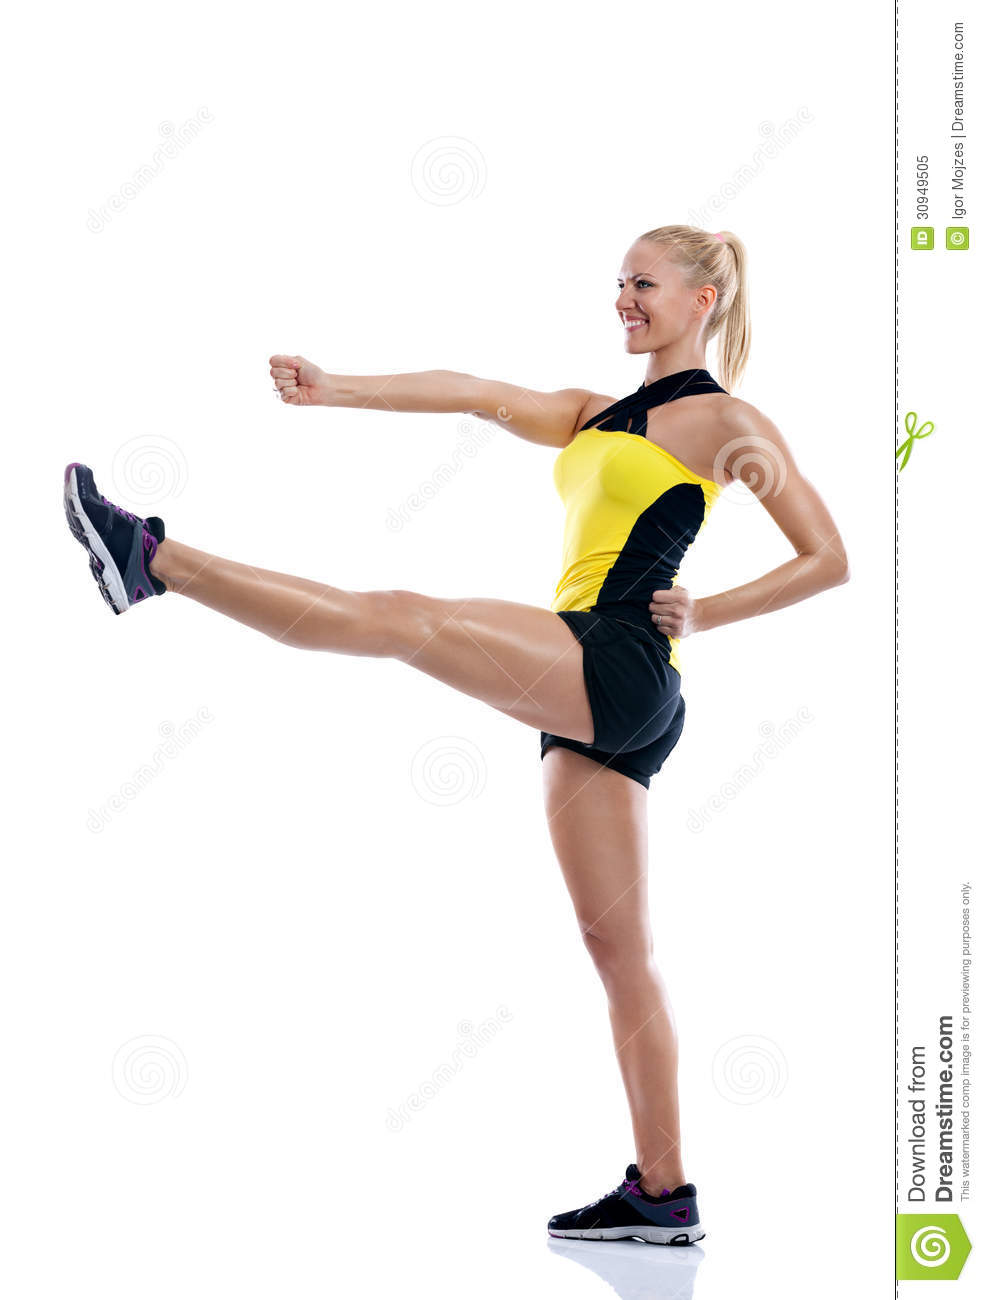 Body Attack Royalty Free Stock Photo - Image: 30949505